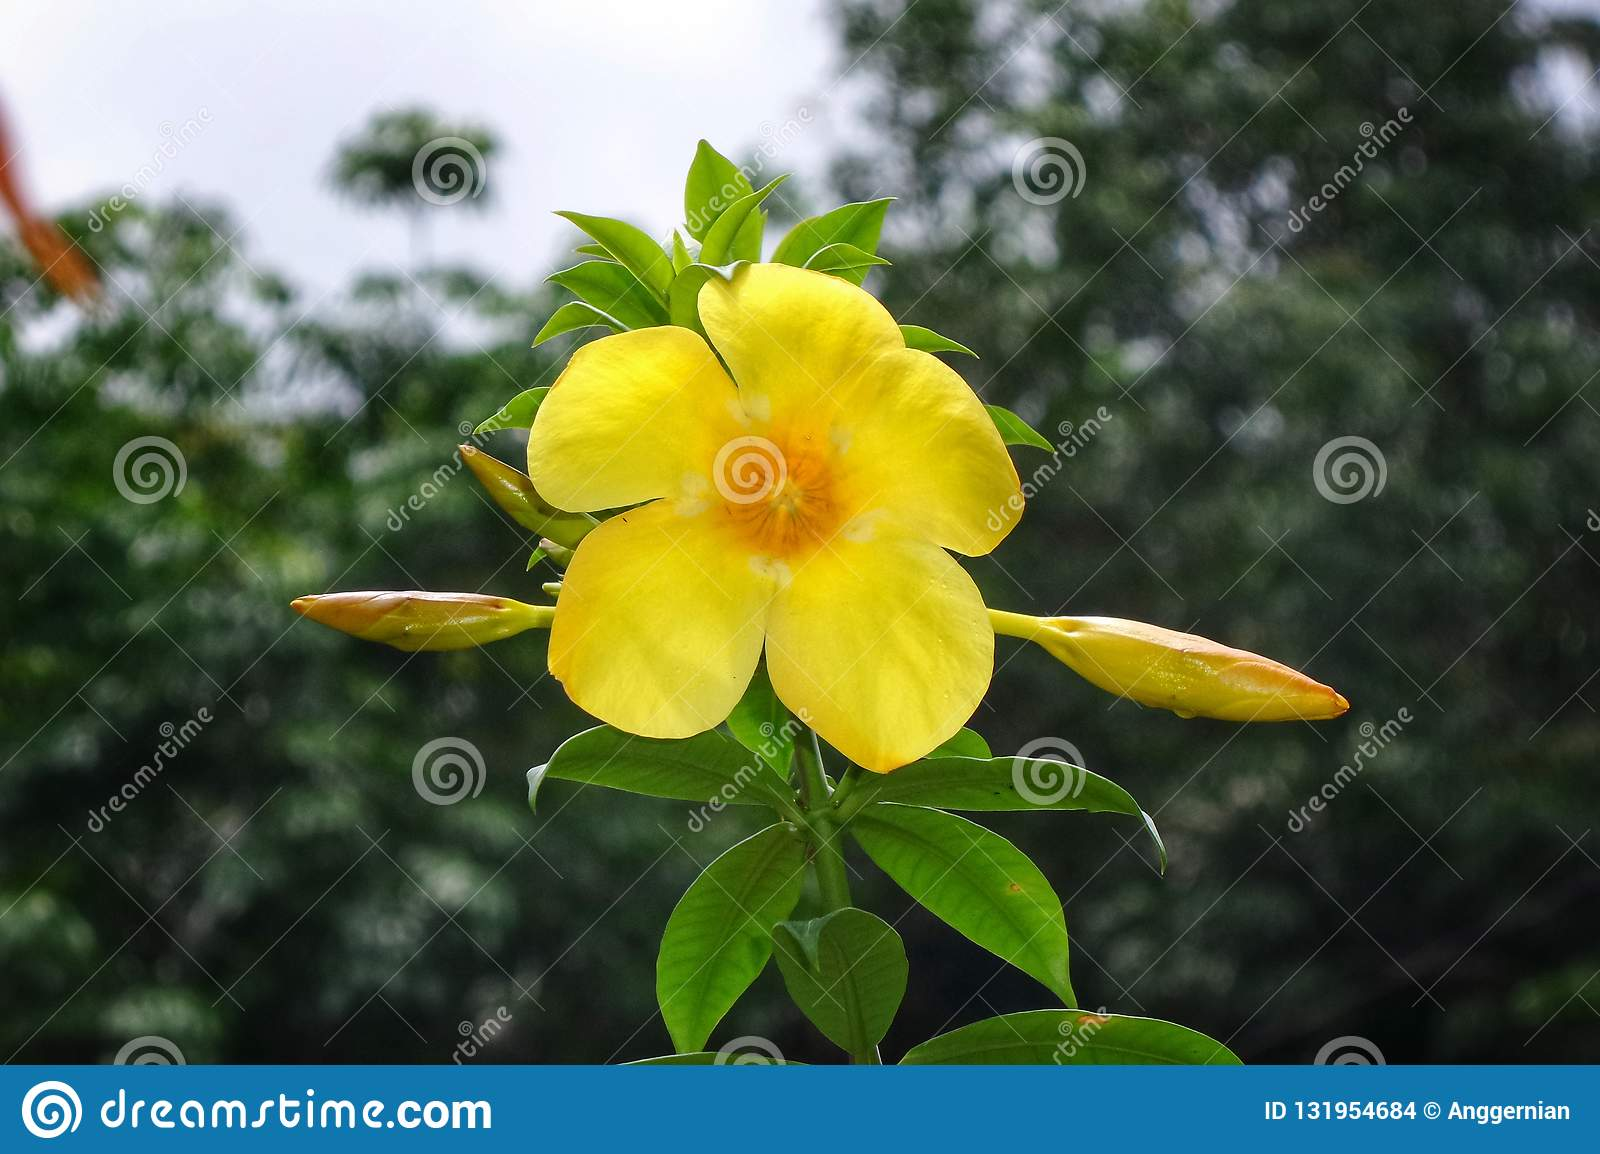 Yellow Flower On The Green Leaves Hd Wallpaper Background